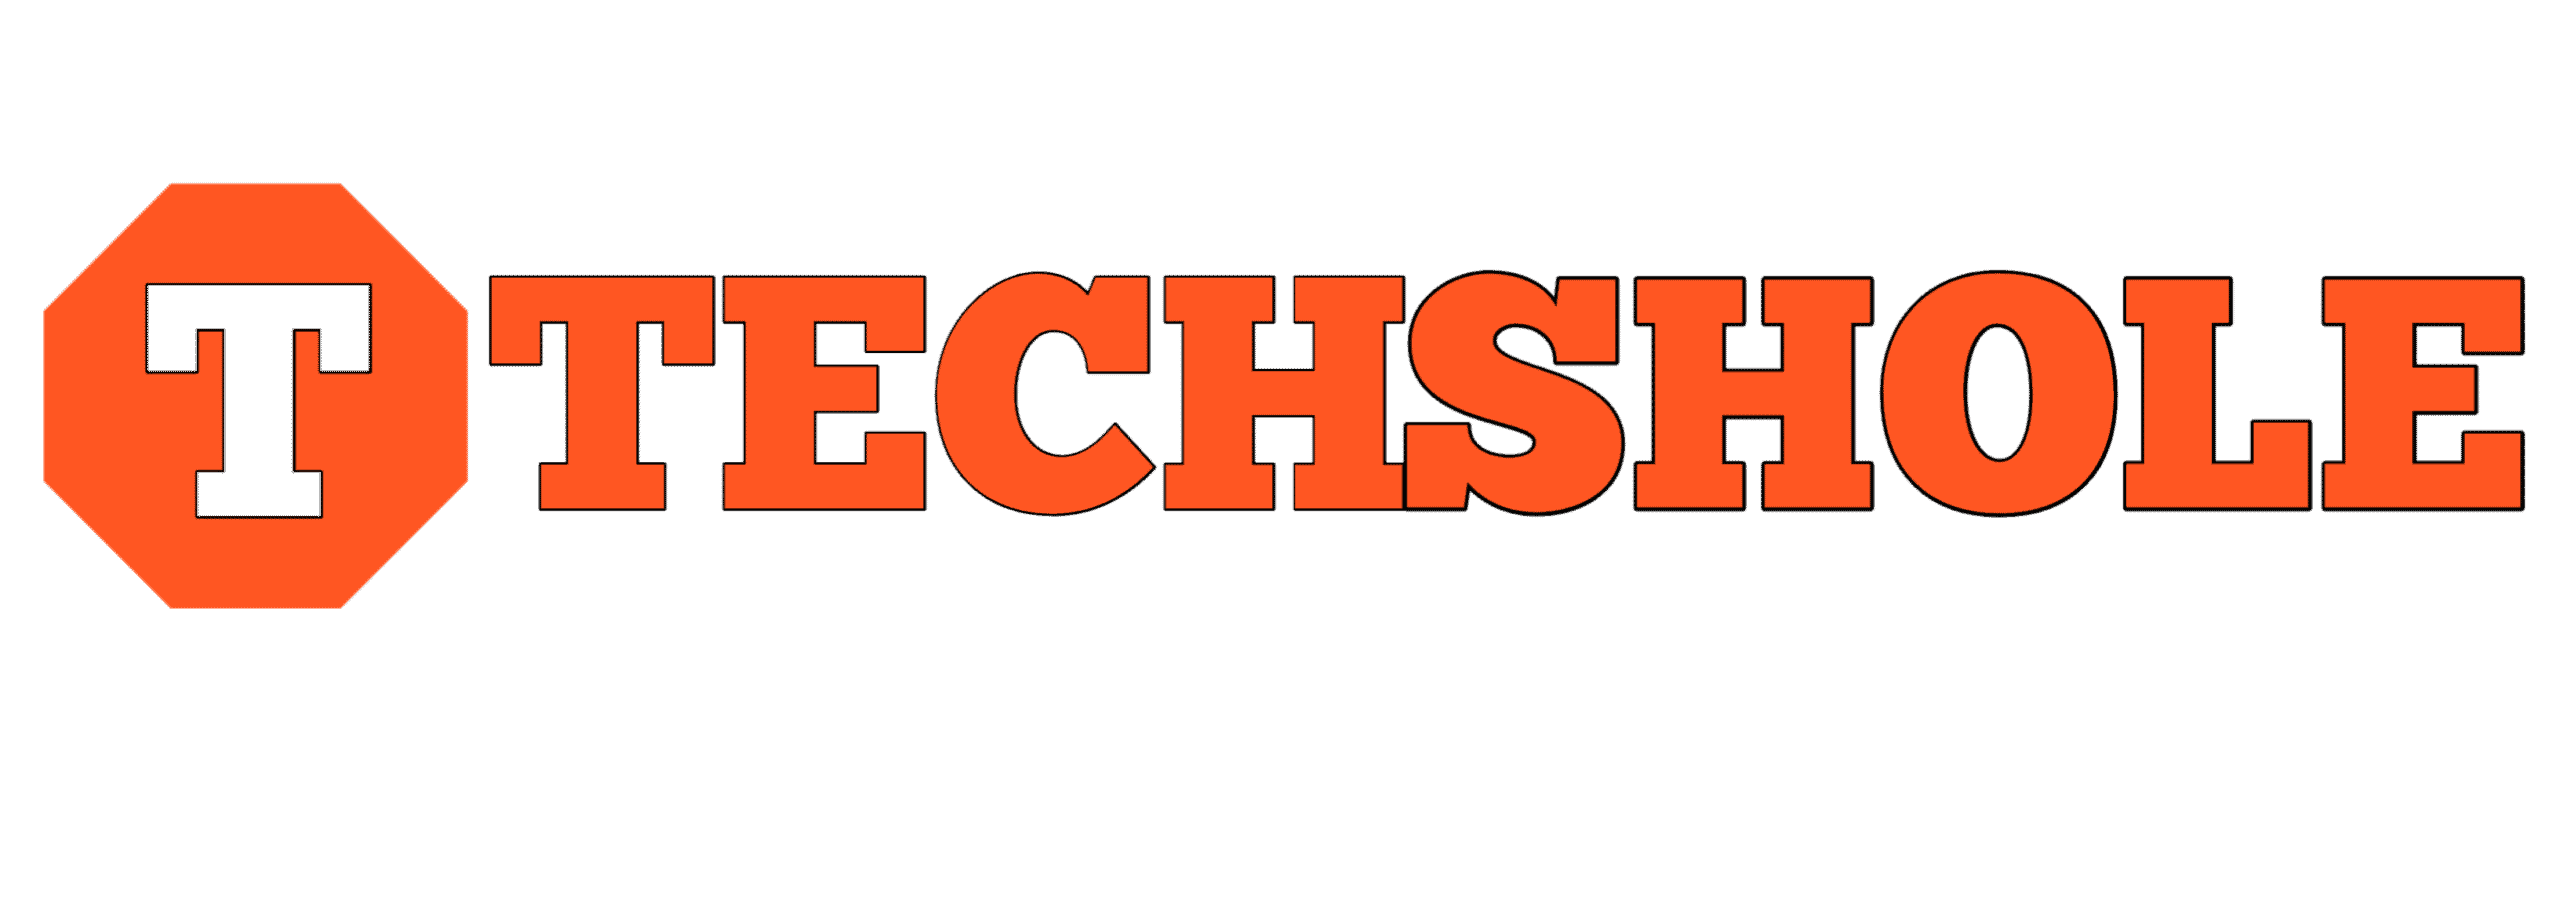 TECHSHOLE.COM